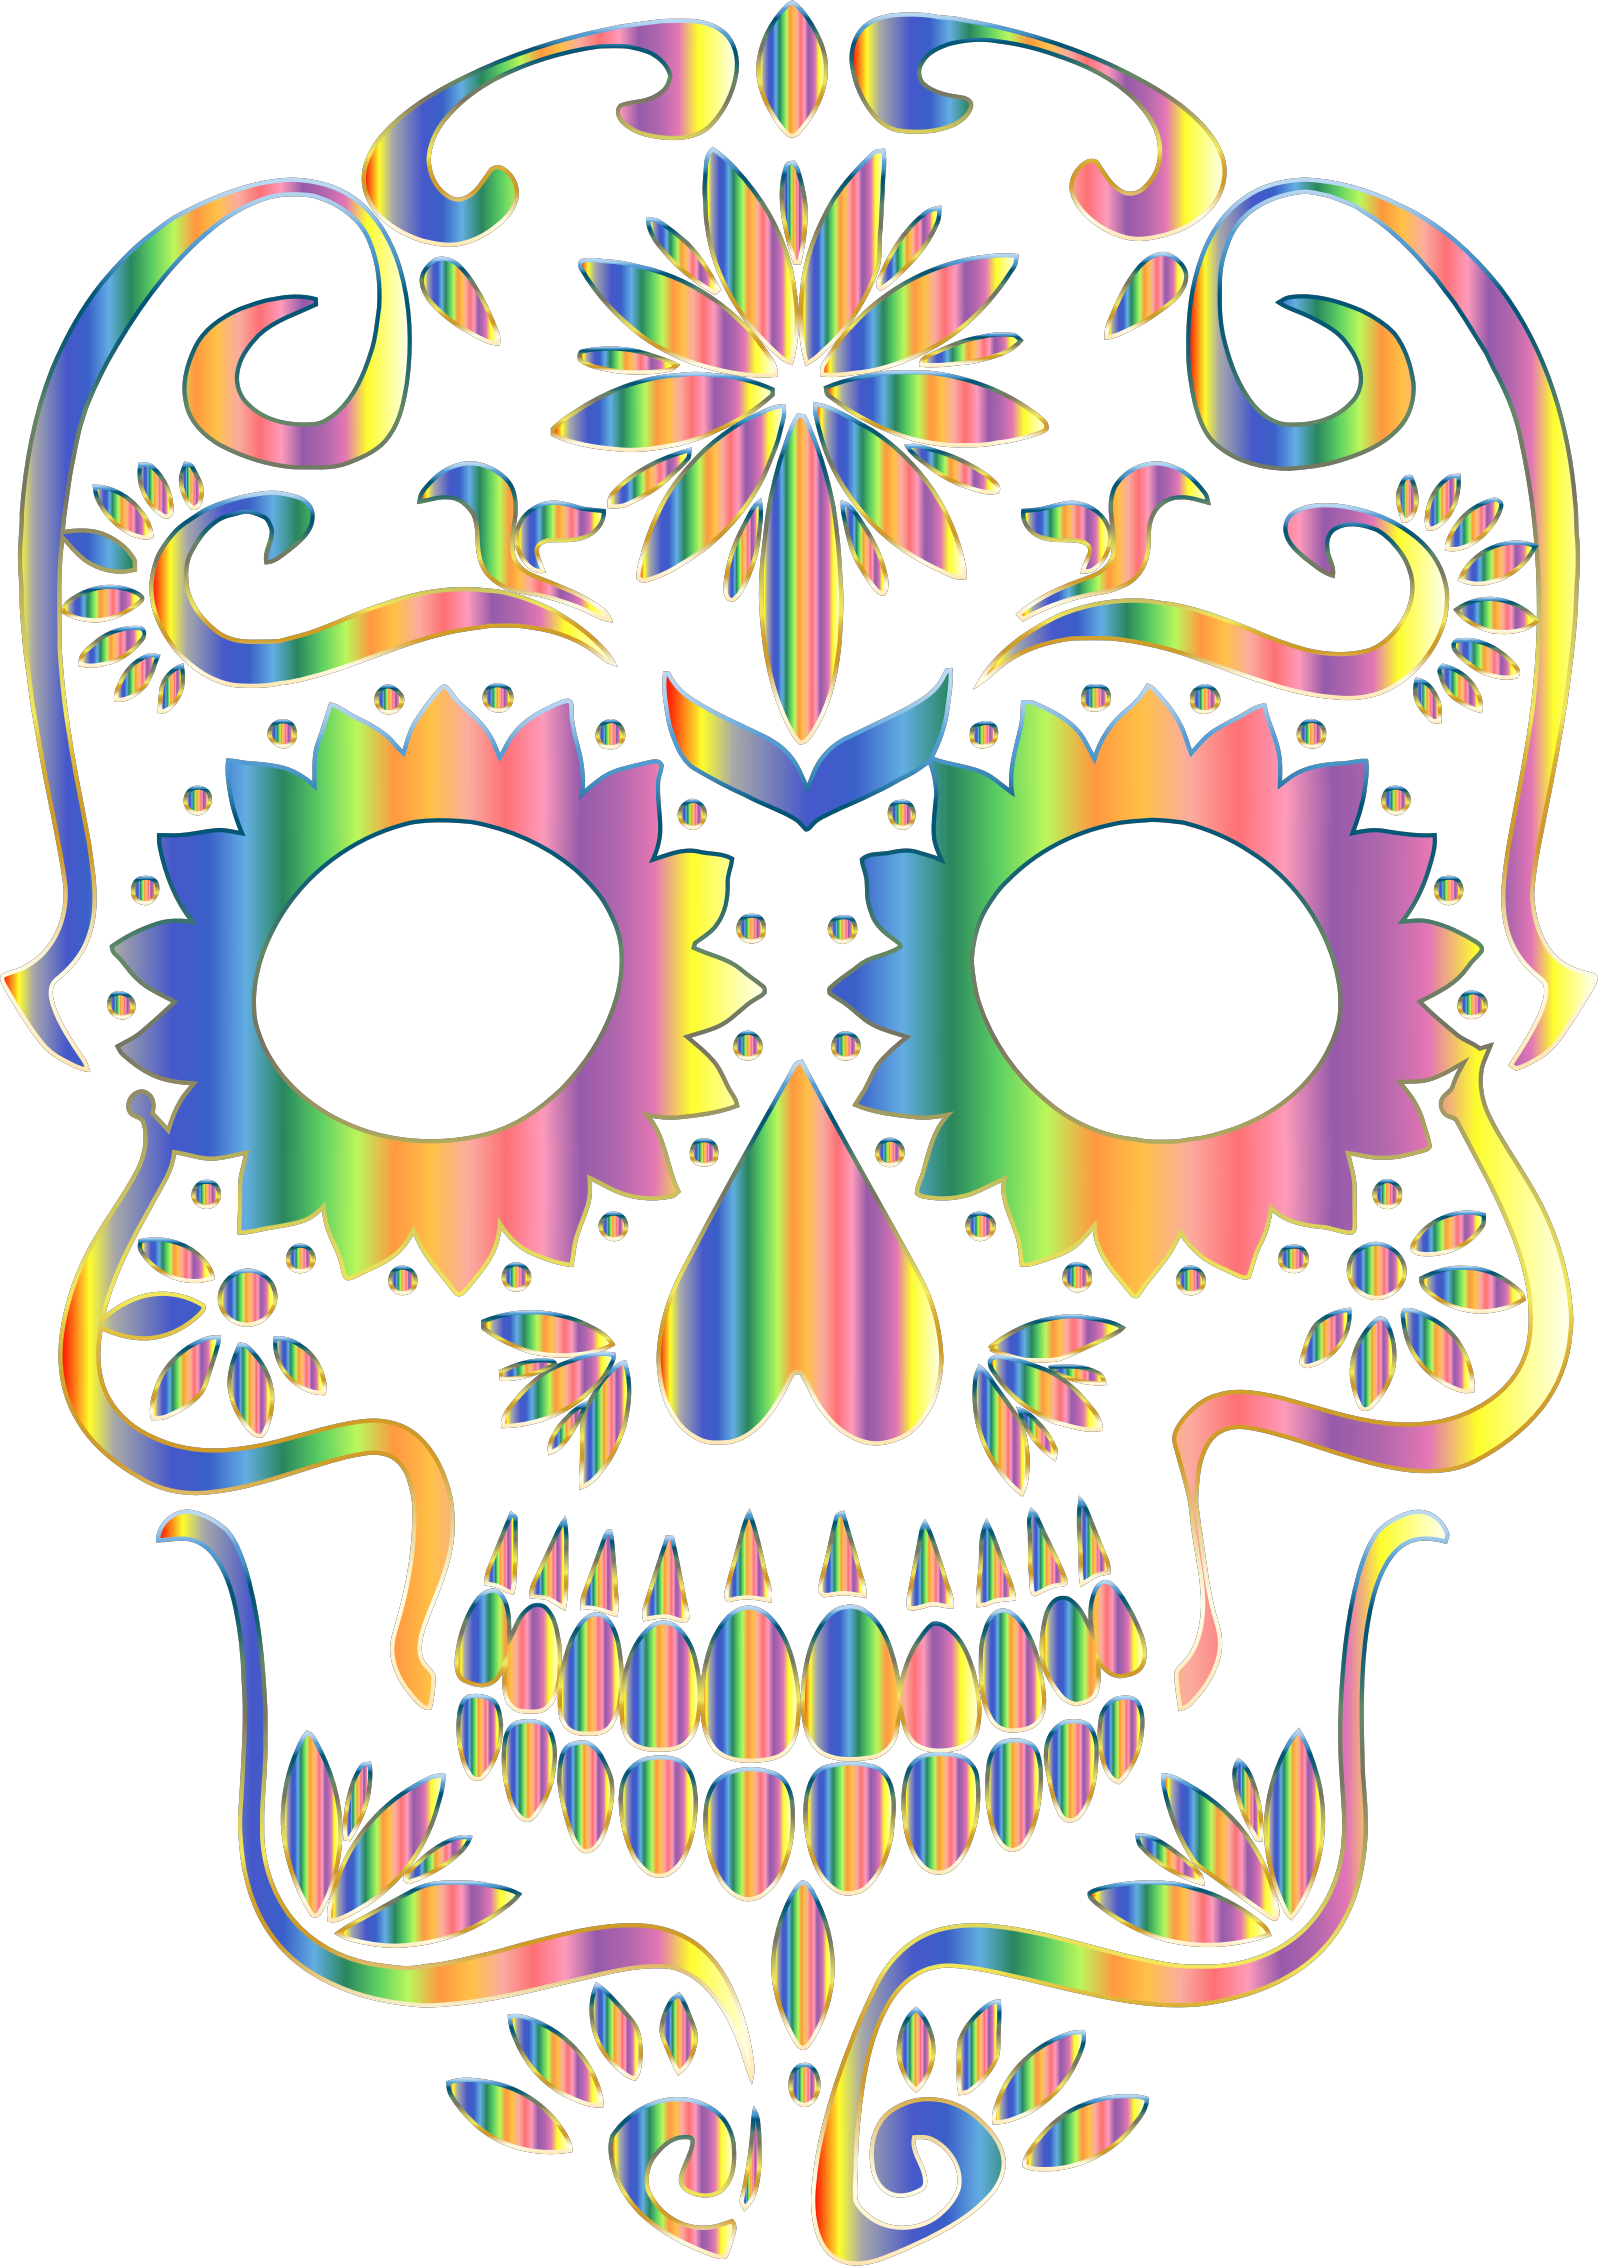 Psychedelic Sugar Skull Silhouette No Background by GDJ